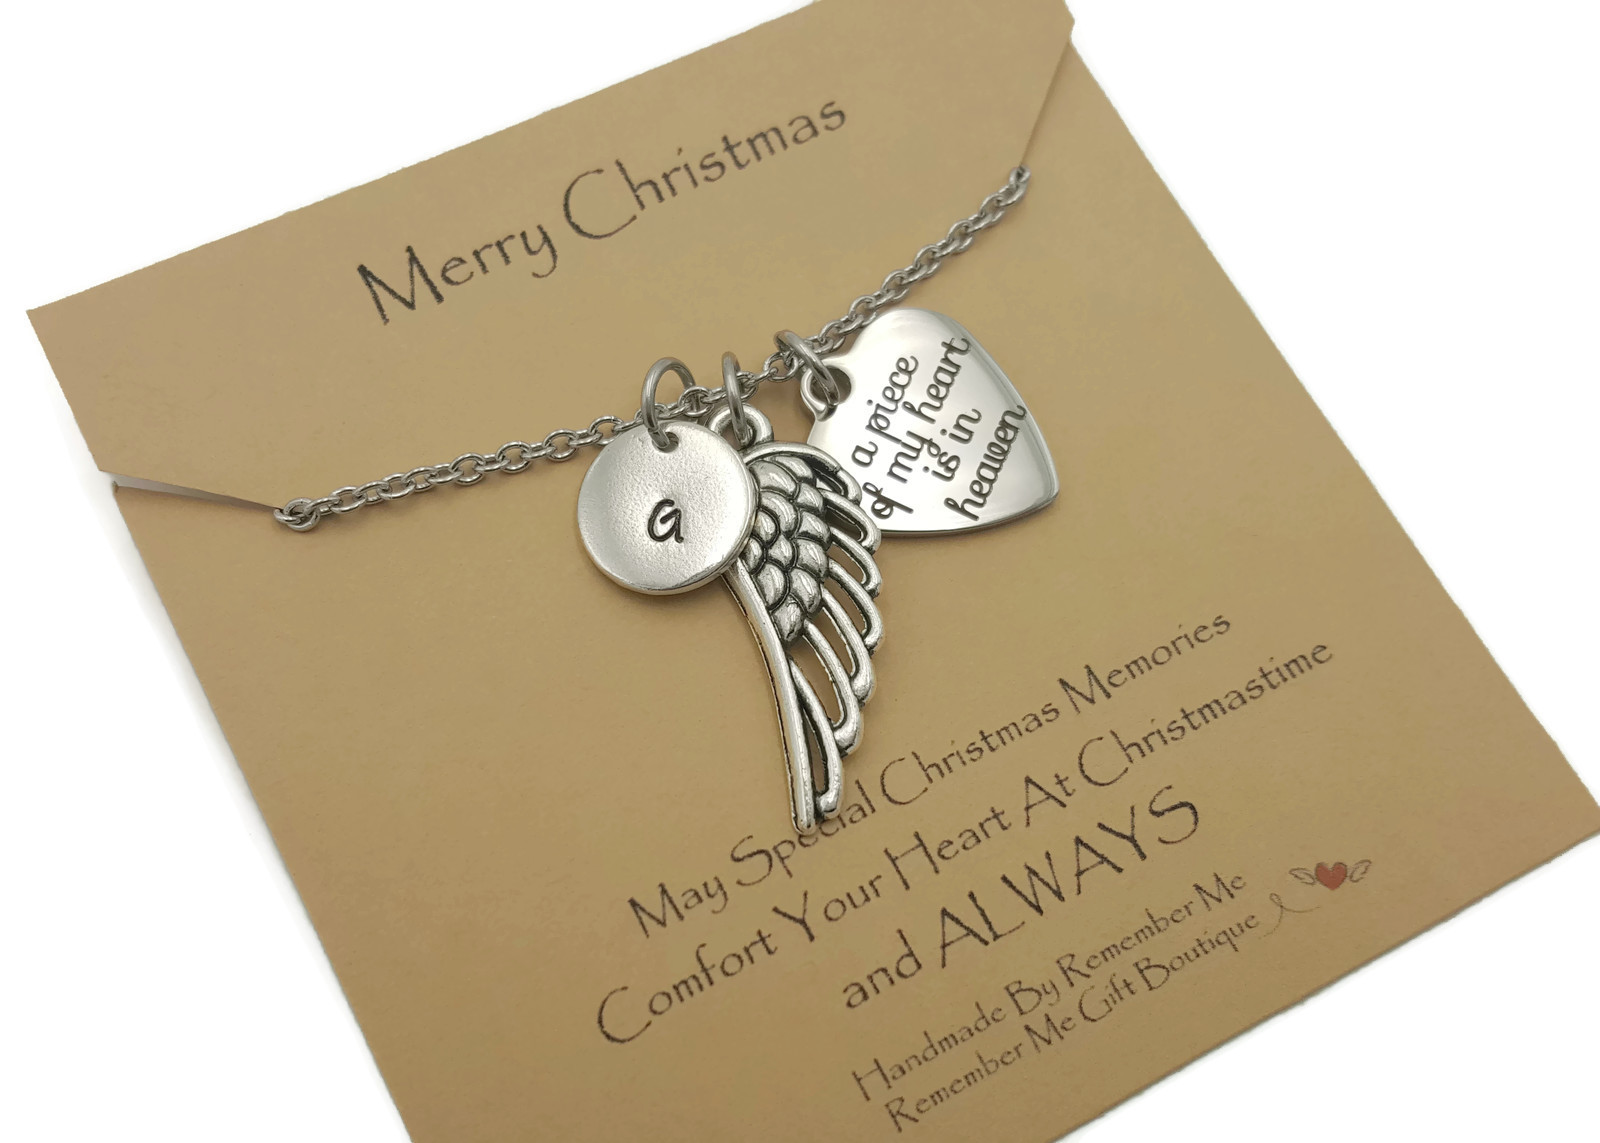 Merry Christmas A Piece Of My Heart is in Heaven Memorial Necklace